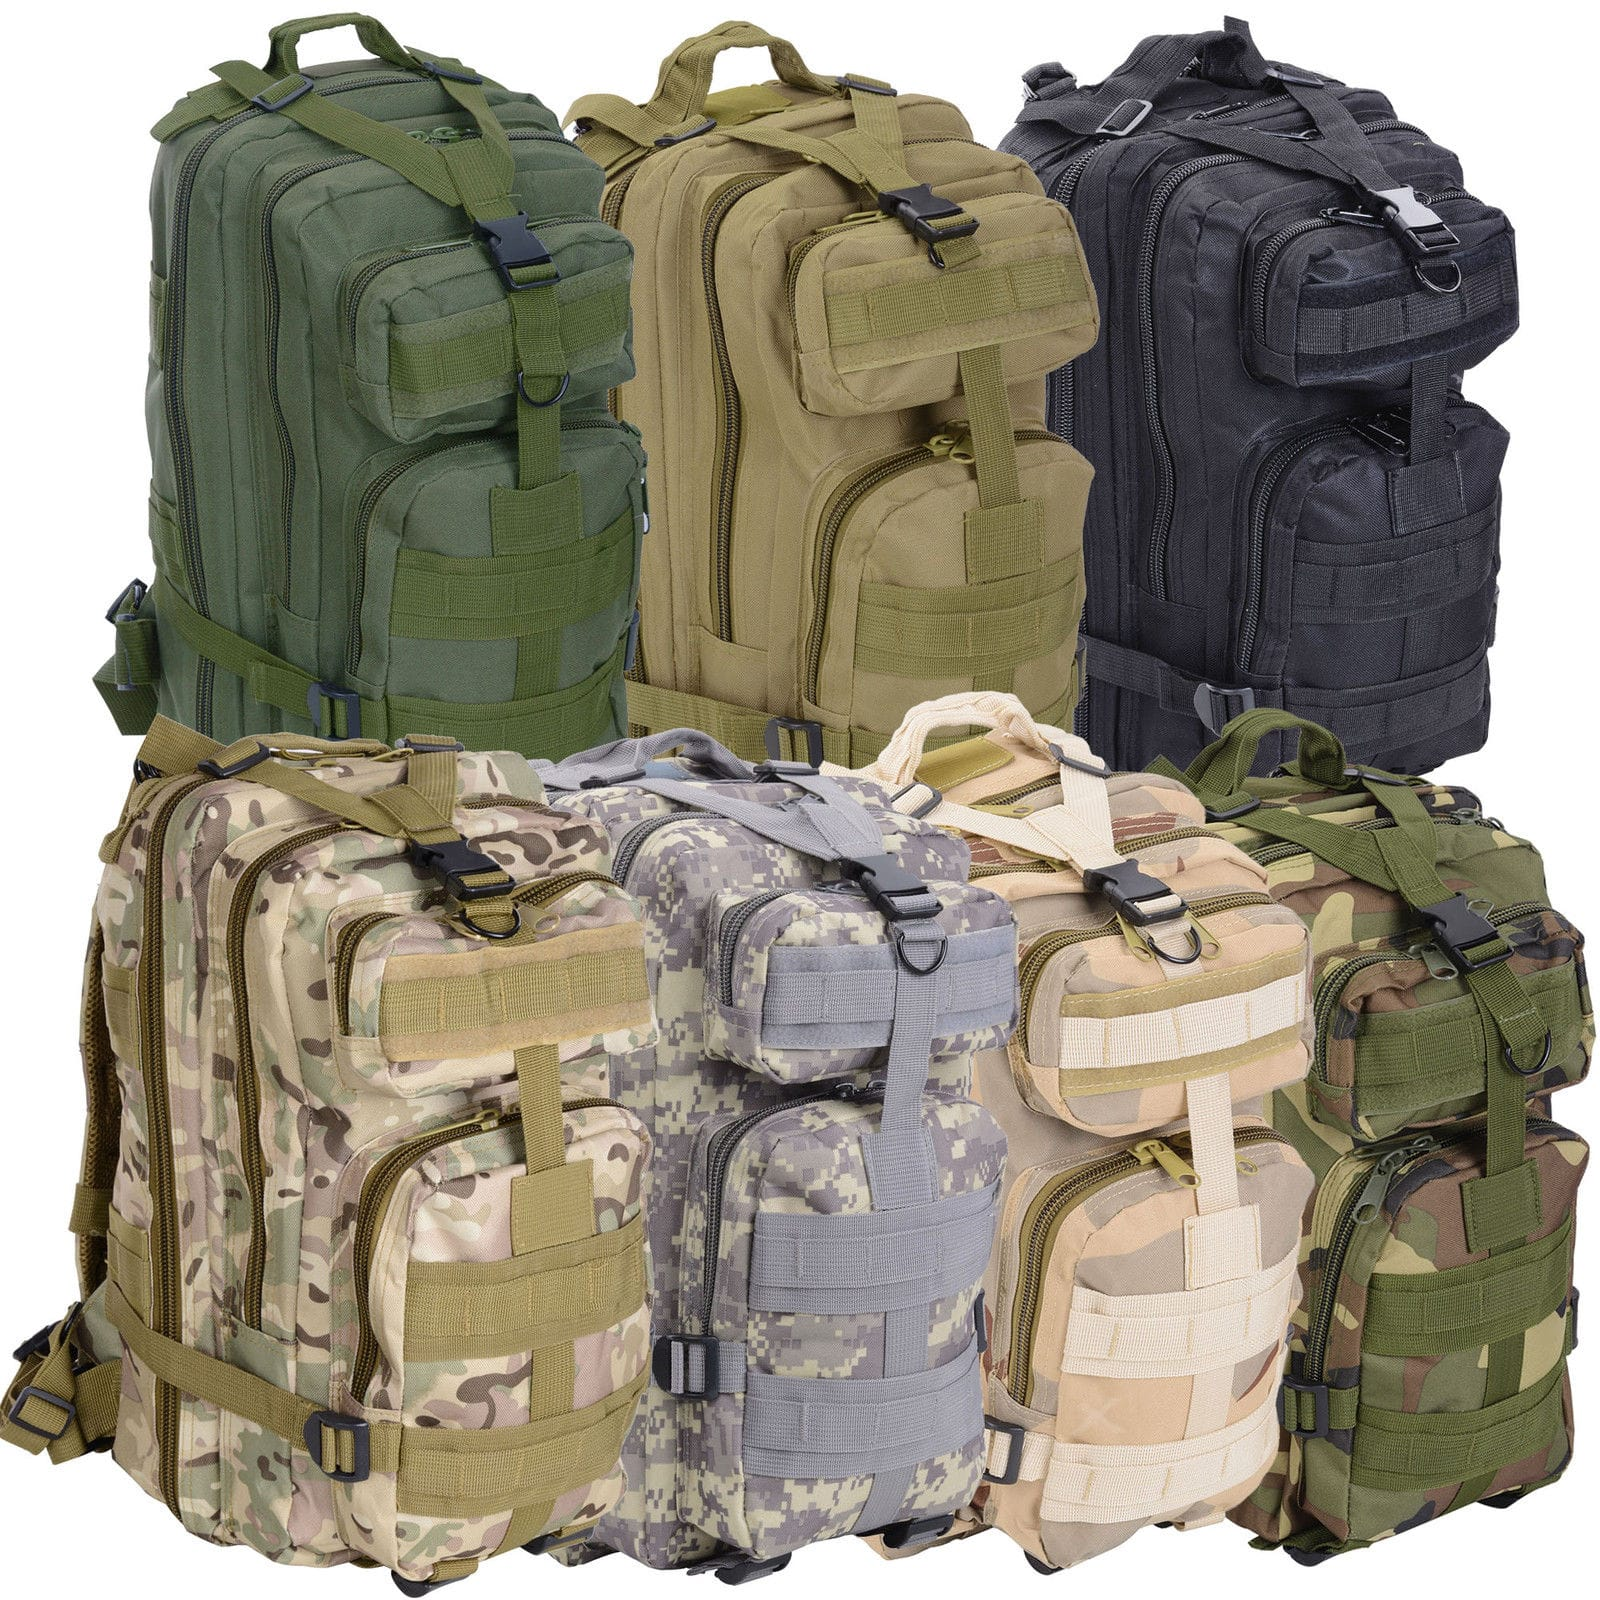 30L Military Molle Camping Backpack Tactical Camping Hiking Travel Bag Outdoor $16.50 + fs @ebay.com